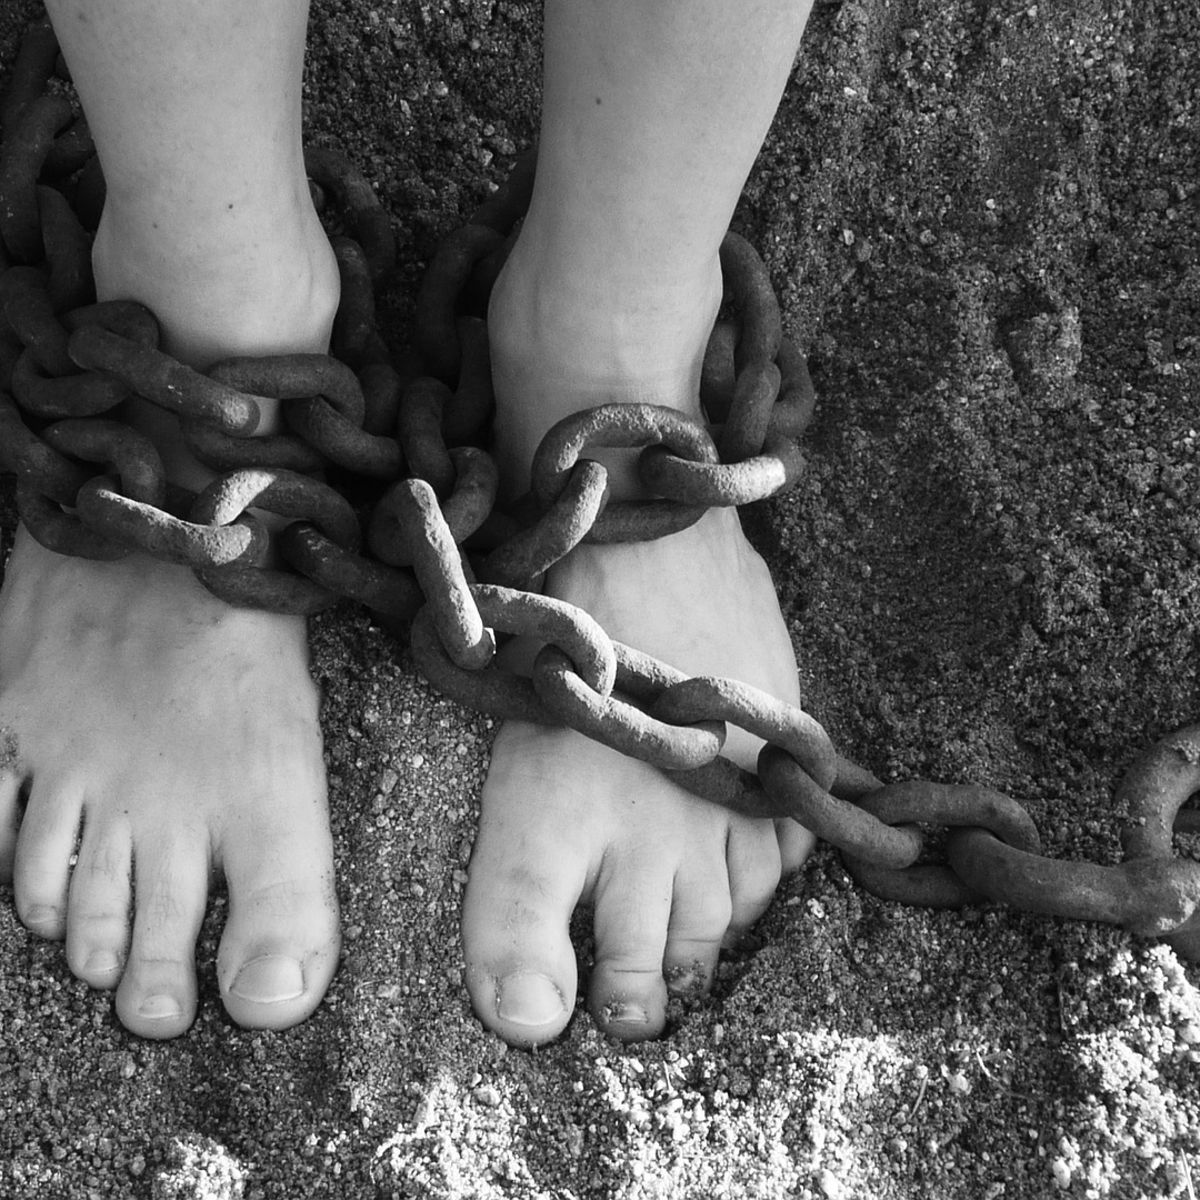 Slavery with chains around feet, bondage